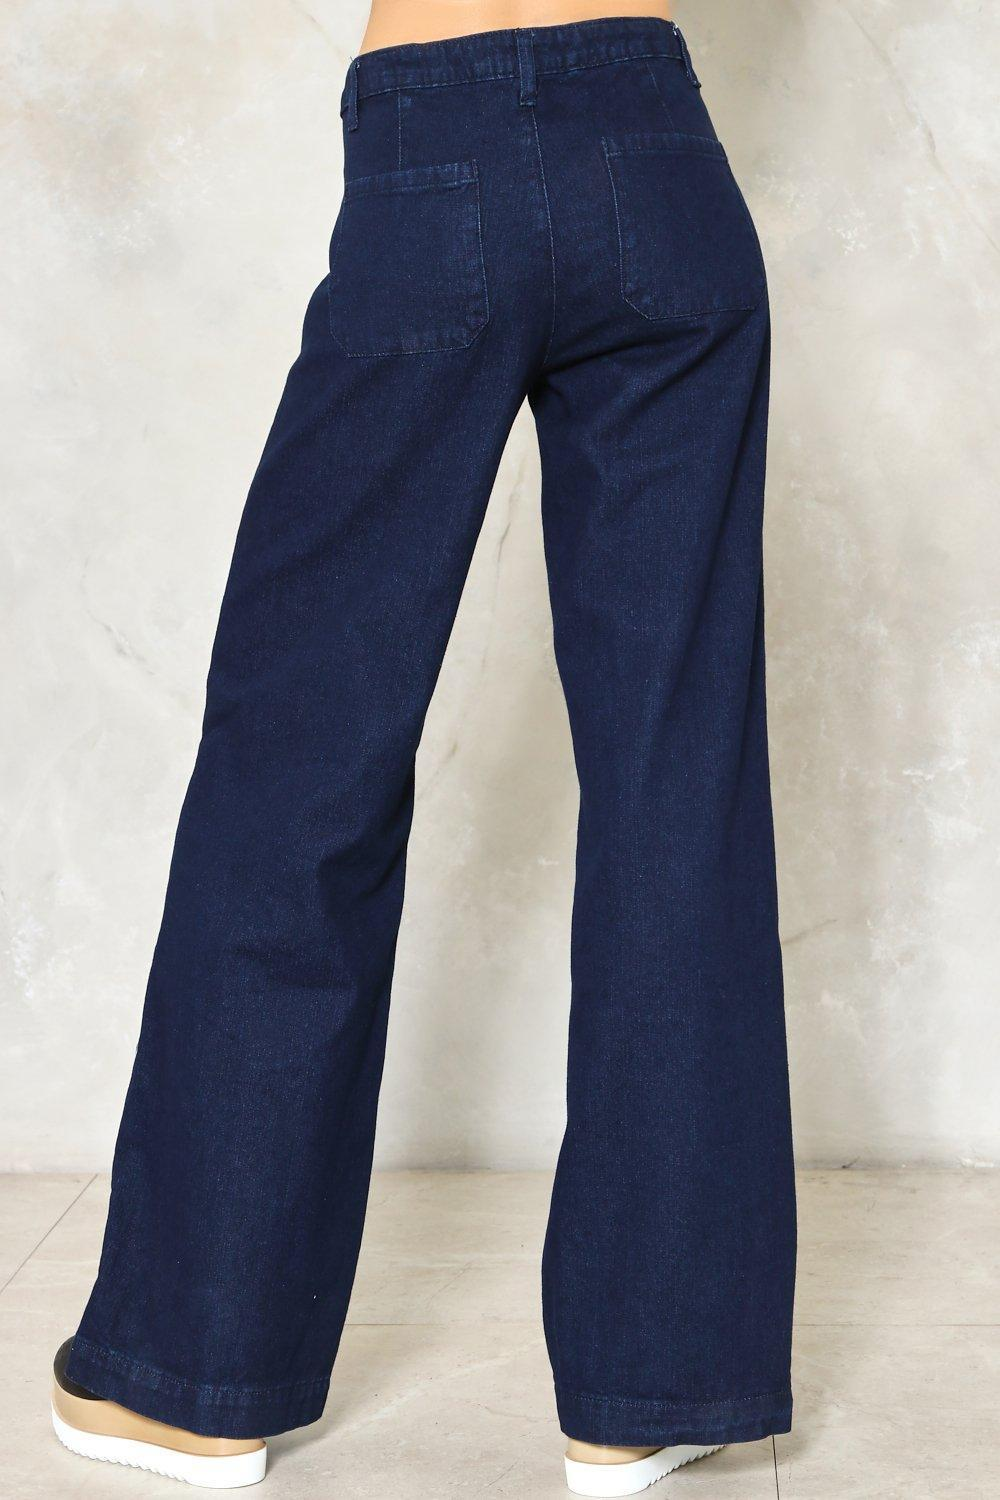 Nasty Gal Go Far Wide Leg Jeans Go Far Wide Leg Jeans In